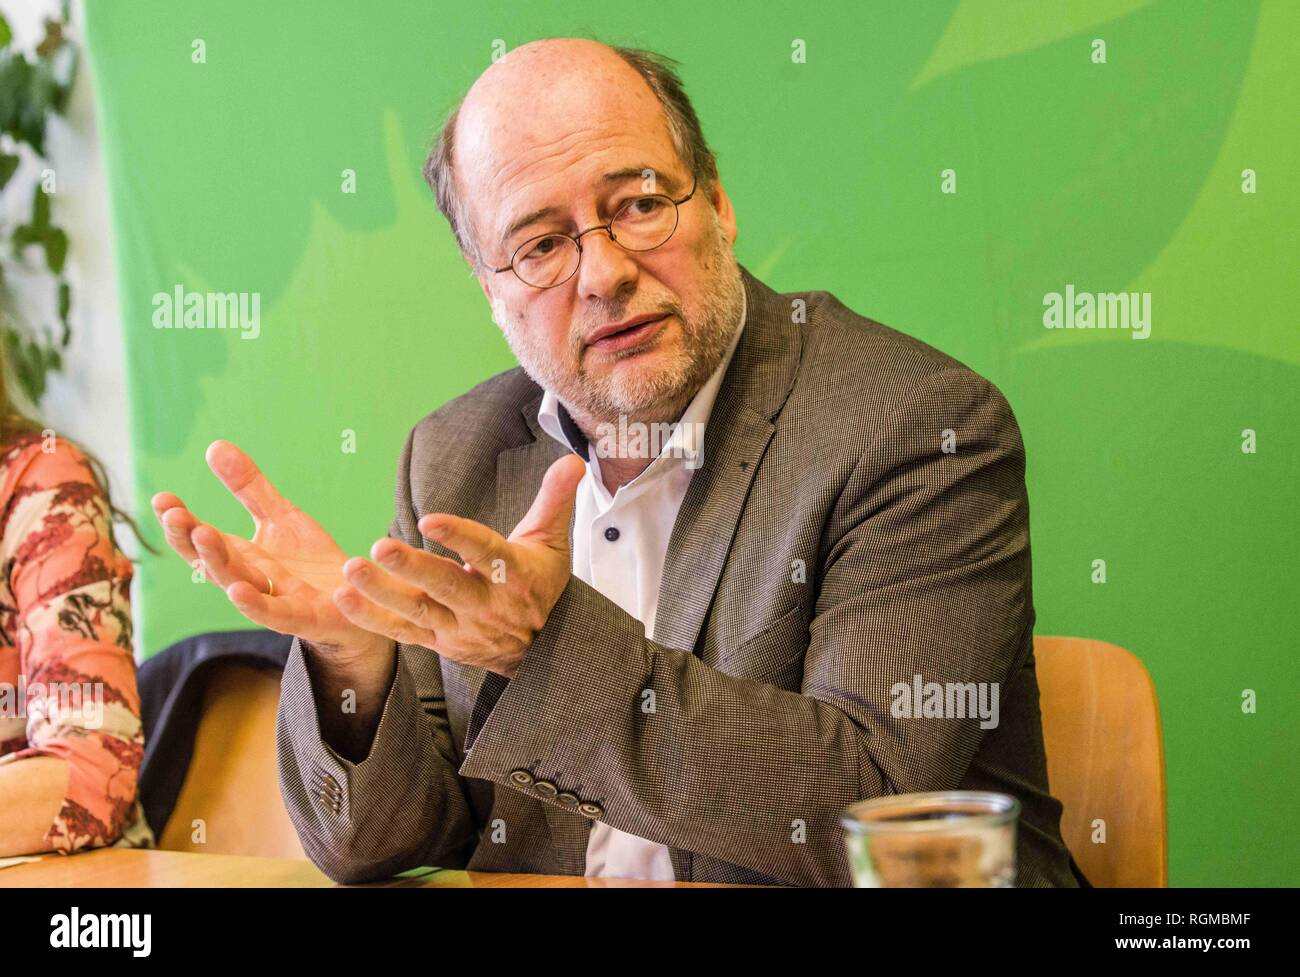 Munich, Bavaria, Germany. 30th Jan, 2019. EIKE HALLITZKY Landesvorsitzende of the Green Party. The Bavarian Green Party presented Henrike Hahn, their European ParliamentSpitzenkandidat for the upcoming European elections (Europawahl). Hahn is a trained technologist and has lived previously in Detroit and Paris. Her strategies are based on ecological and social criteria and fighting against populism and right extremism. The Greens see the European Union as the greatest peace project of our time, thus they have positioned themselves against authoritarianism, populism, xenophobia, and anti Stock Photo